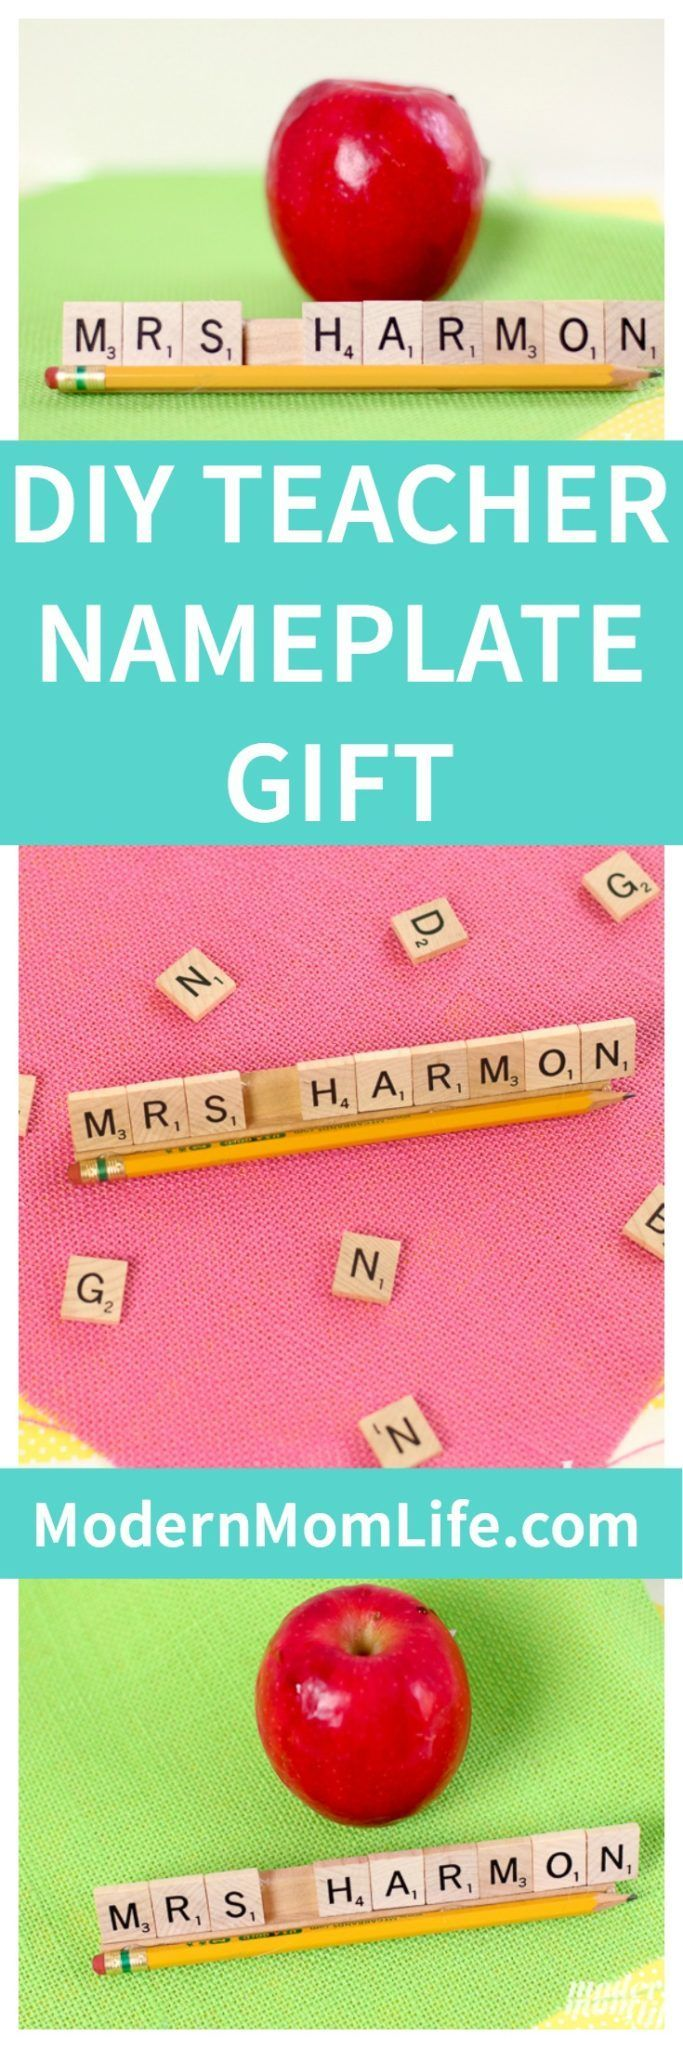 How to make a DIY Personalized Teacher Nameplate Gift using Scrabble tiles. A simple custom teacher gift that takes less than 10 minutes to make. My daughter's teacher loved her custom nameplate gift.  via @amodernmomlife